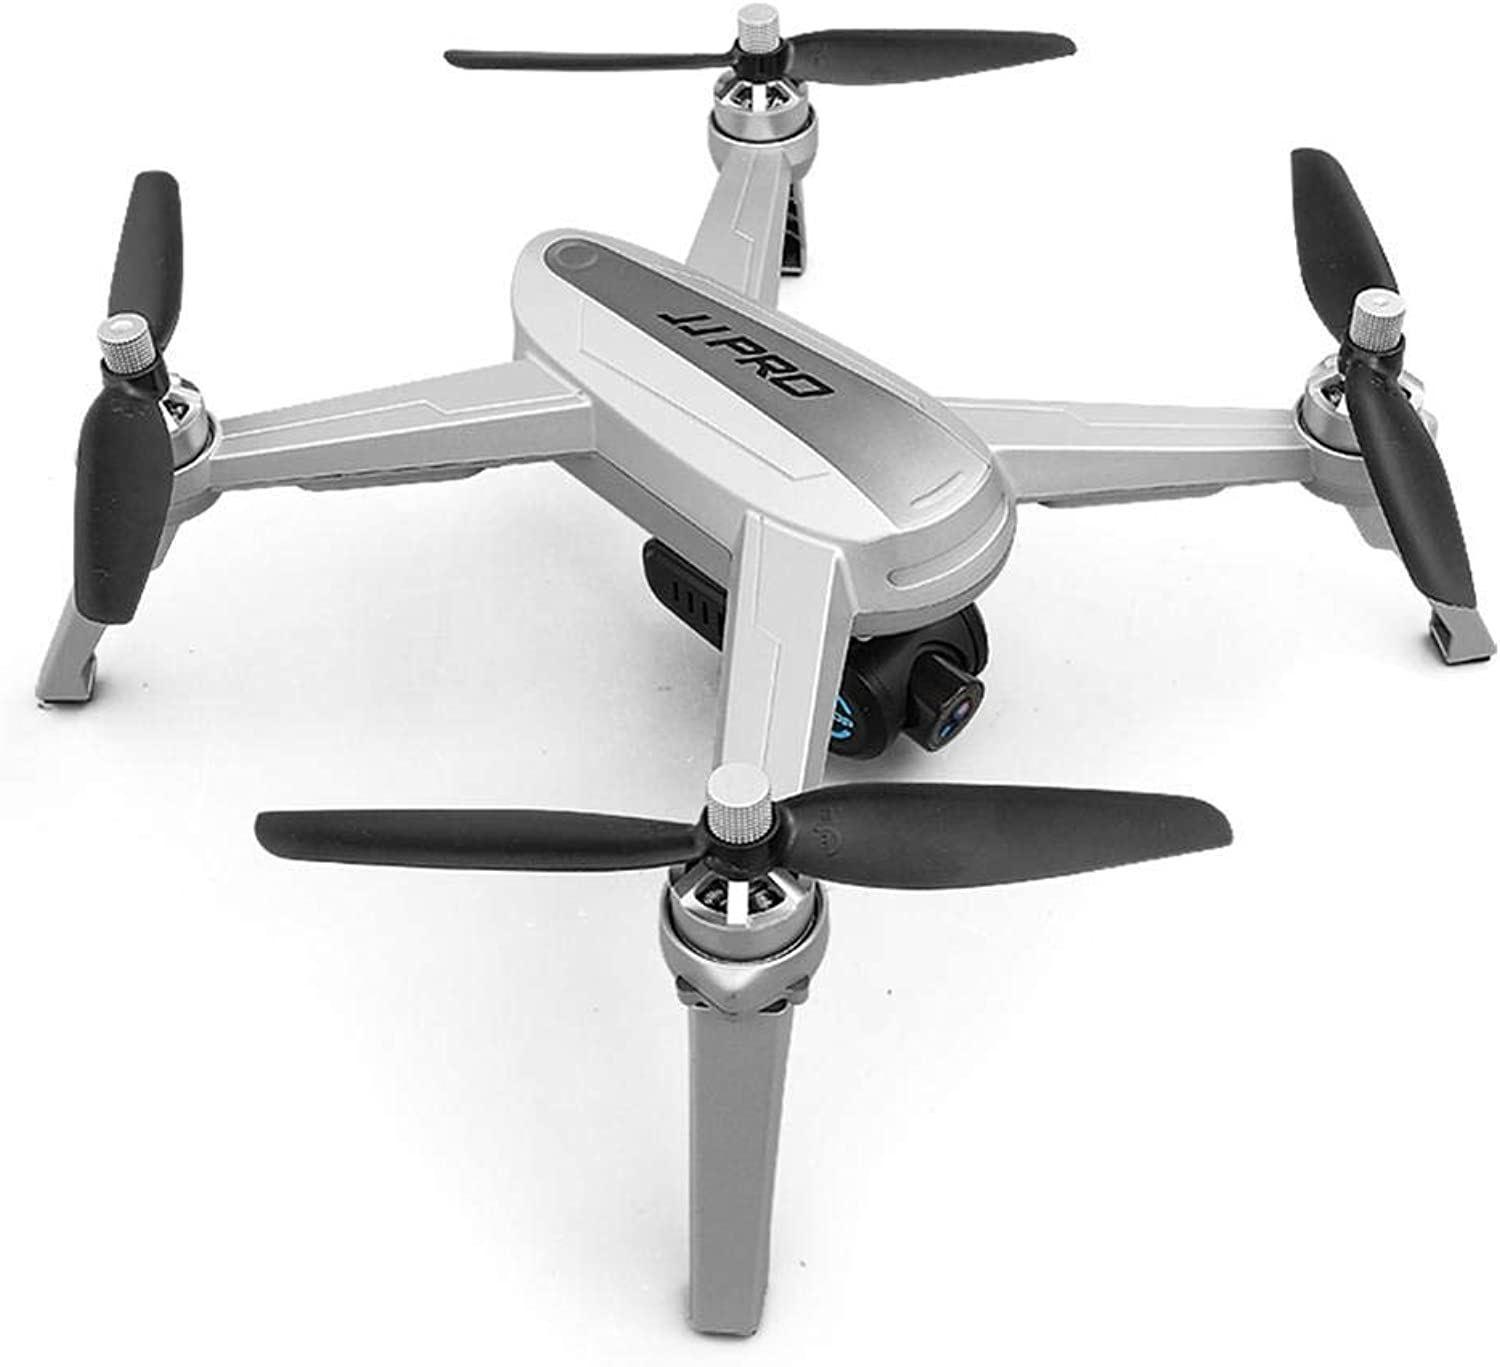 EBS SHOP JJPRO X5 Drone GPS Positioning Brushless Motor 1080P 5G WiFi Camera Fixed Height Remote Control Aircraft Drone